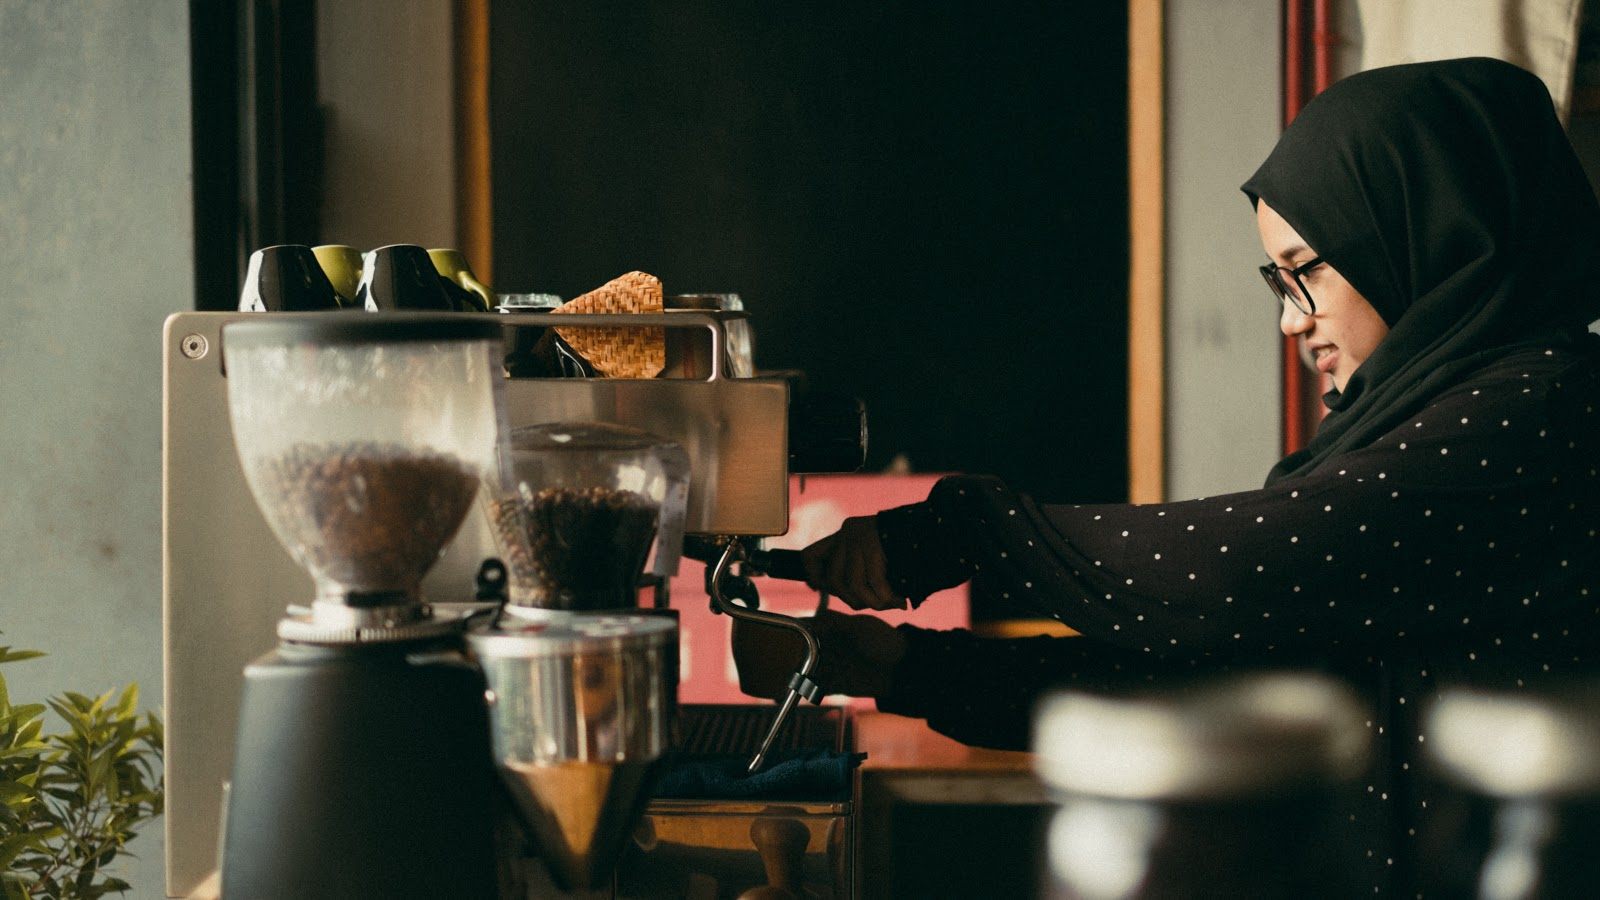 An Asian lady making coffee using an espresso machine at a cafe